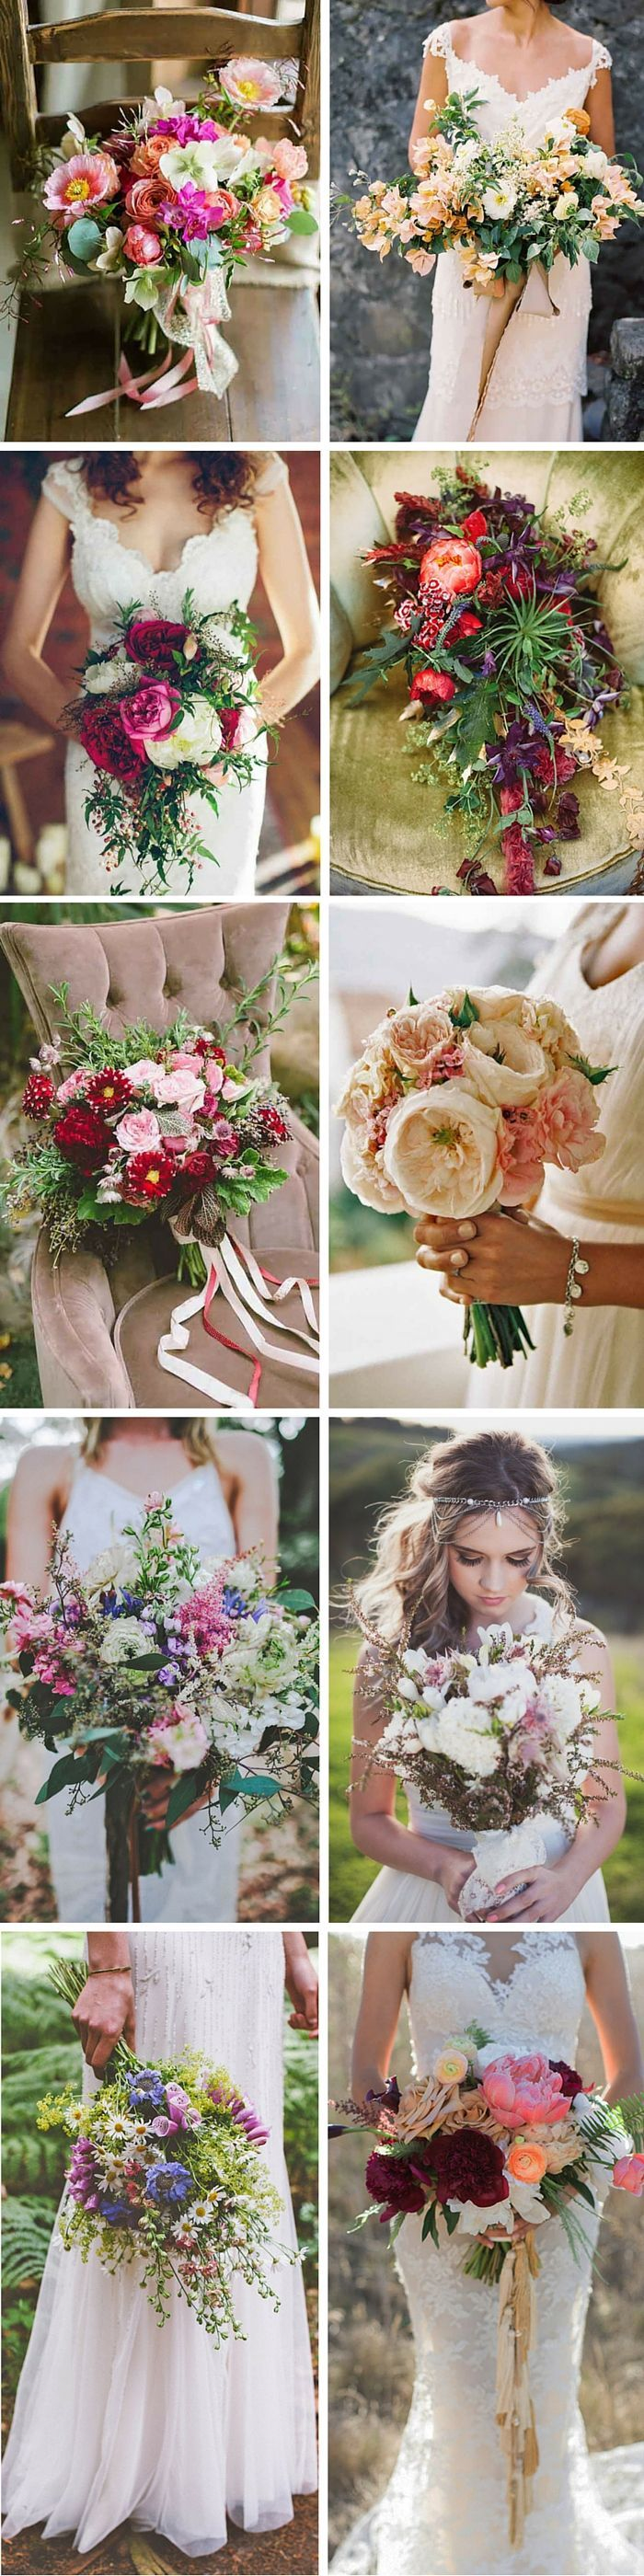 18 Bohemian Wedding Bouquets That Are Totally Chic ❤️ Bohemian chic wedding bouquets are full of whimsical details, wild flowers and feathers. See more: http://www.weddingforward.com/bohemian-wedding-bouquets/ #weddings #bouquets